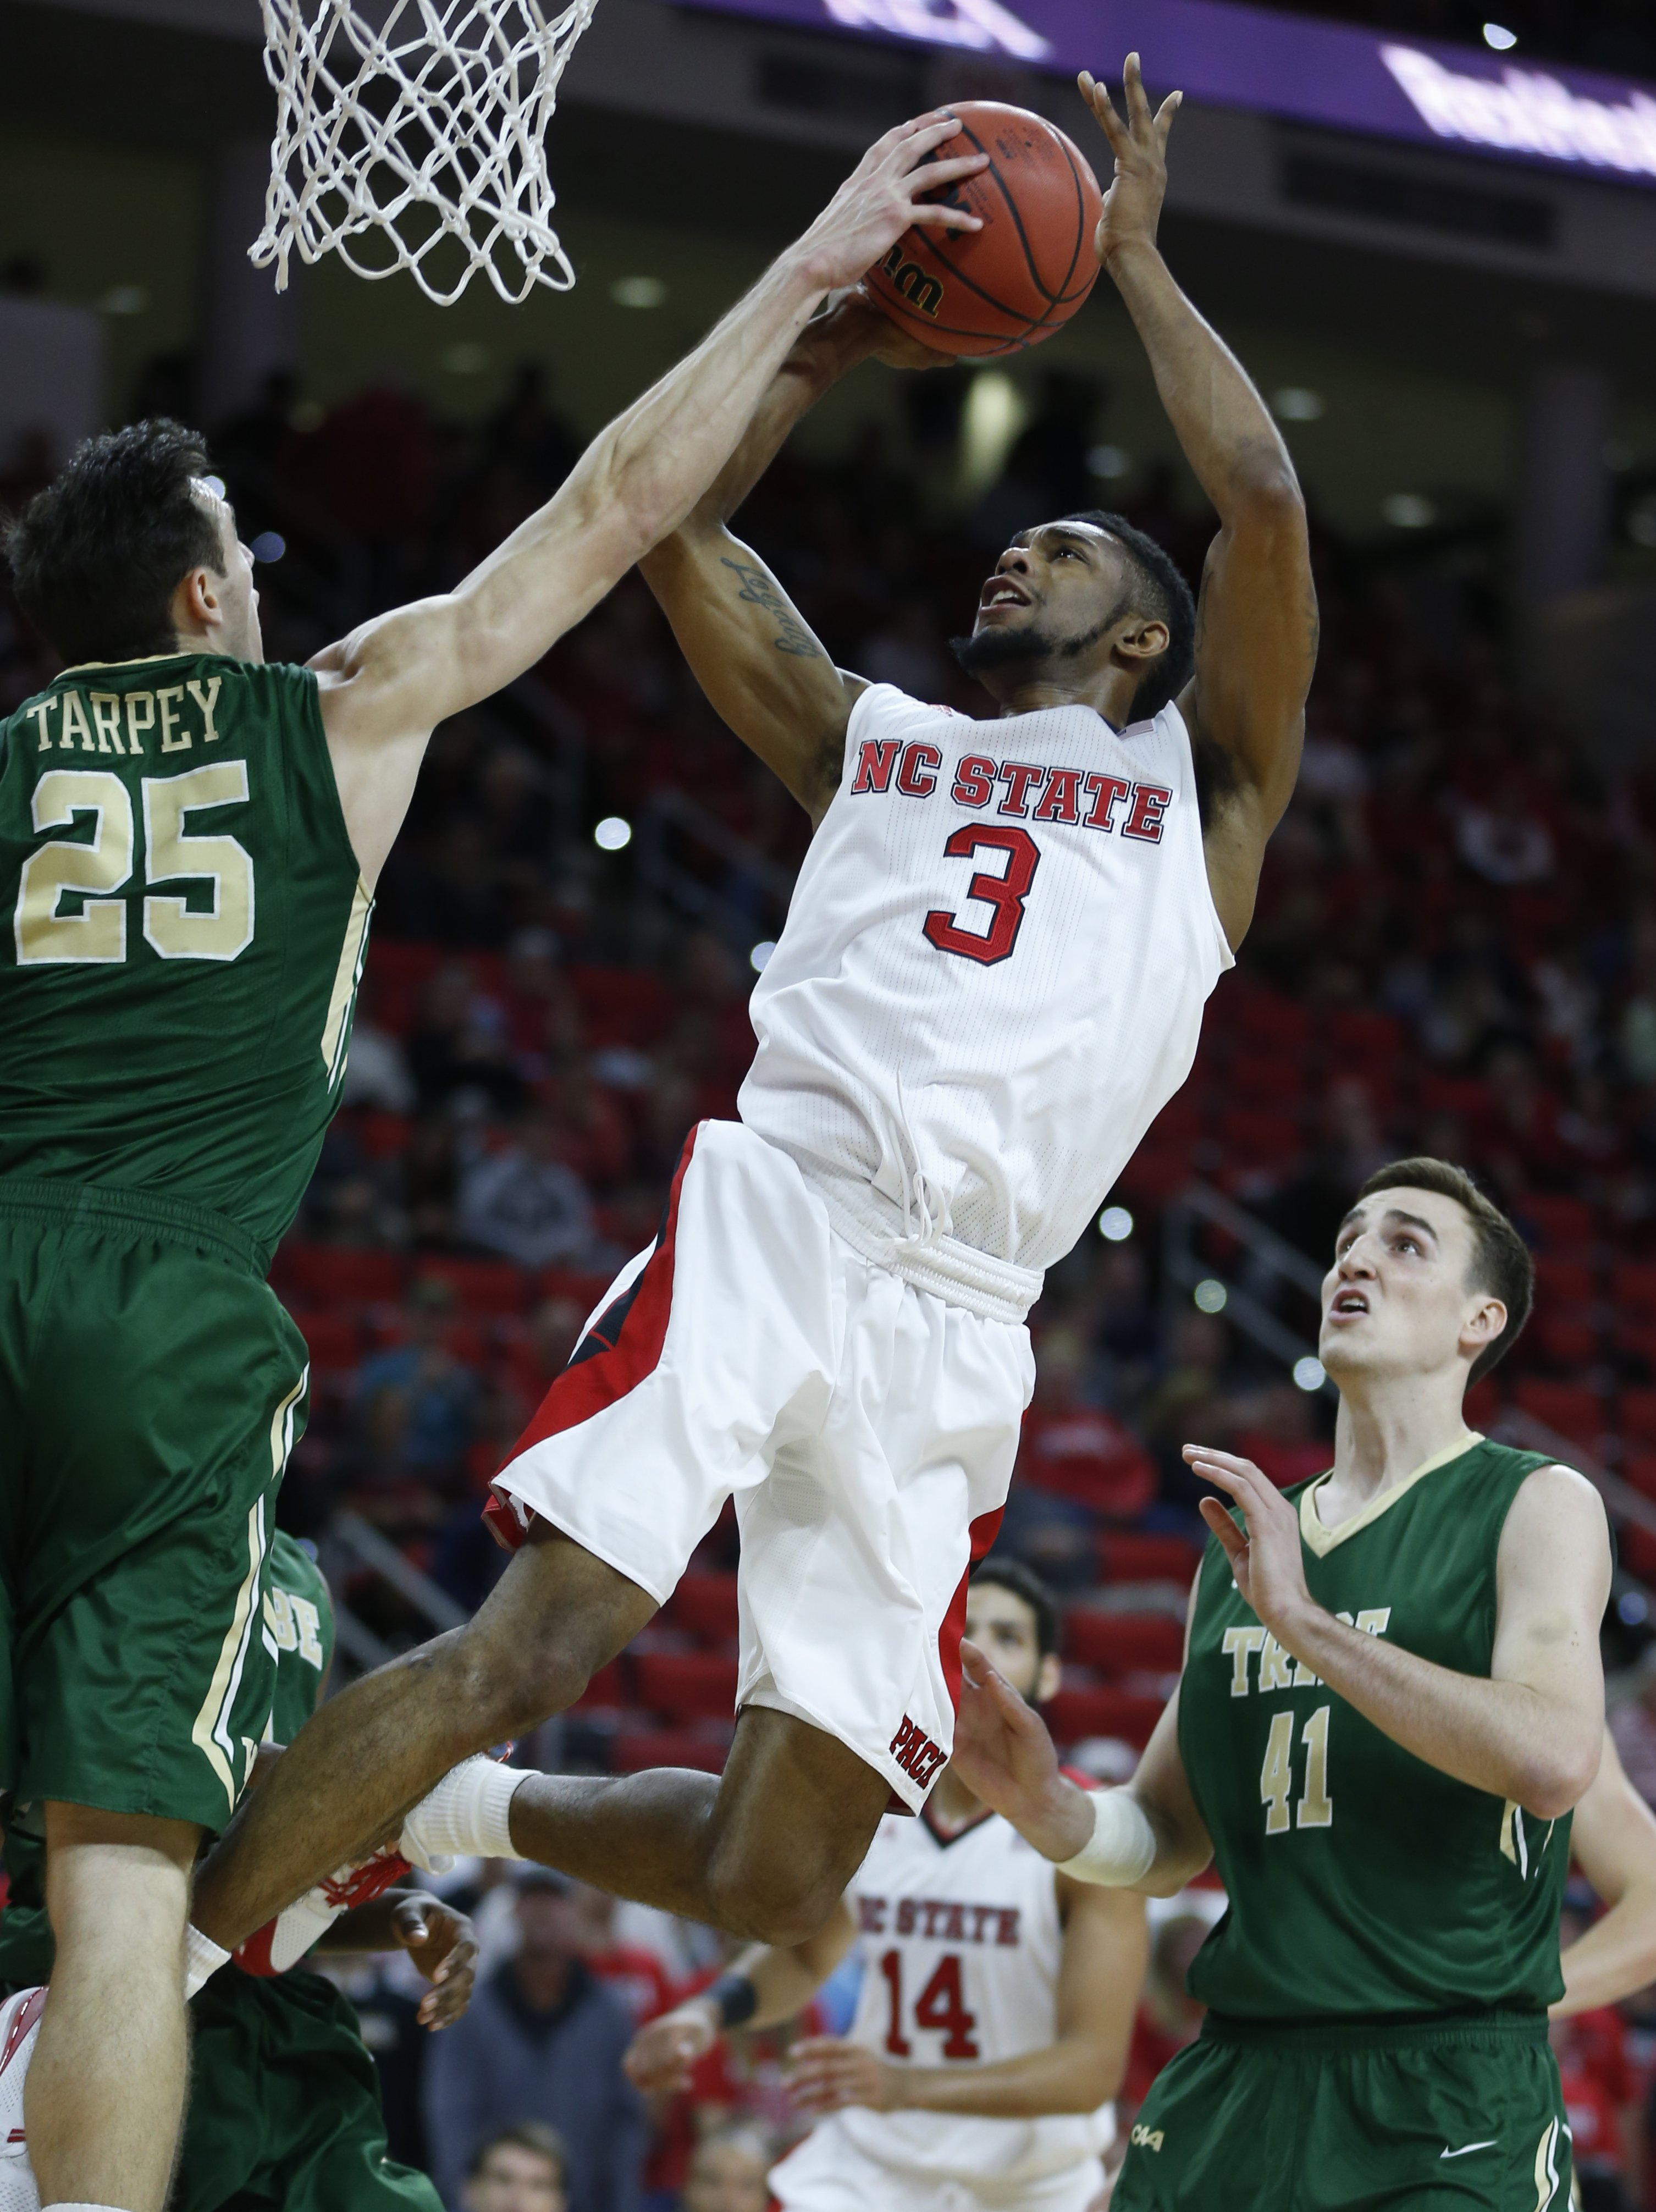 In this Nov. 13, 2015, photo, William & Mary's Terry Tarpey (25) blocks a shot by North Carolina State's Terry Henderson (3) during an NCAA college basketball game in Raleigh, N.C. Henderson played 7 minutes against William & Mary before tearing ligaments